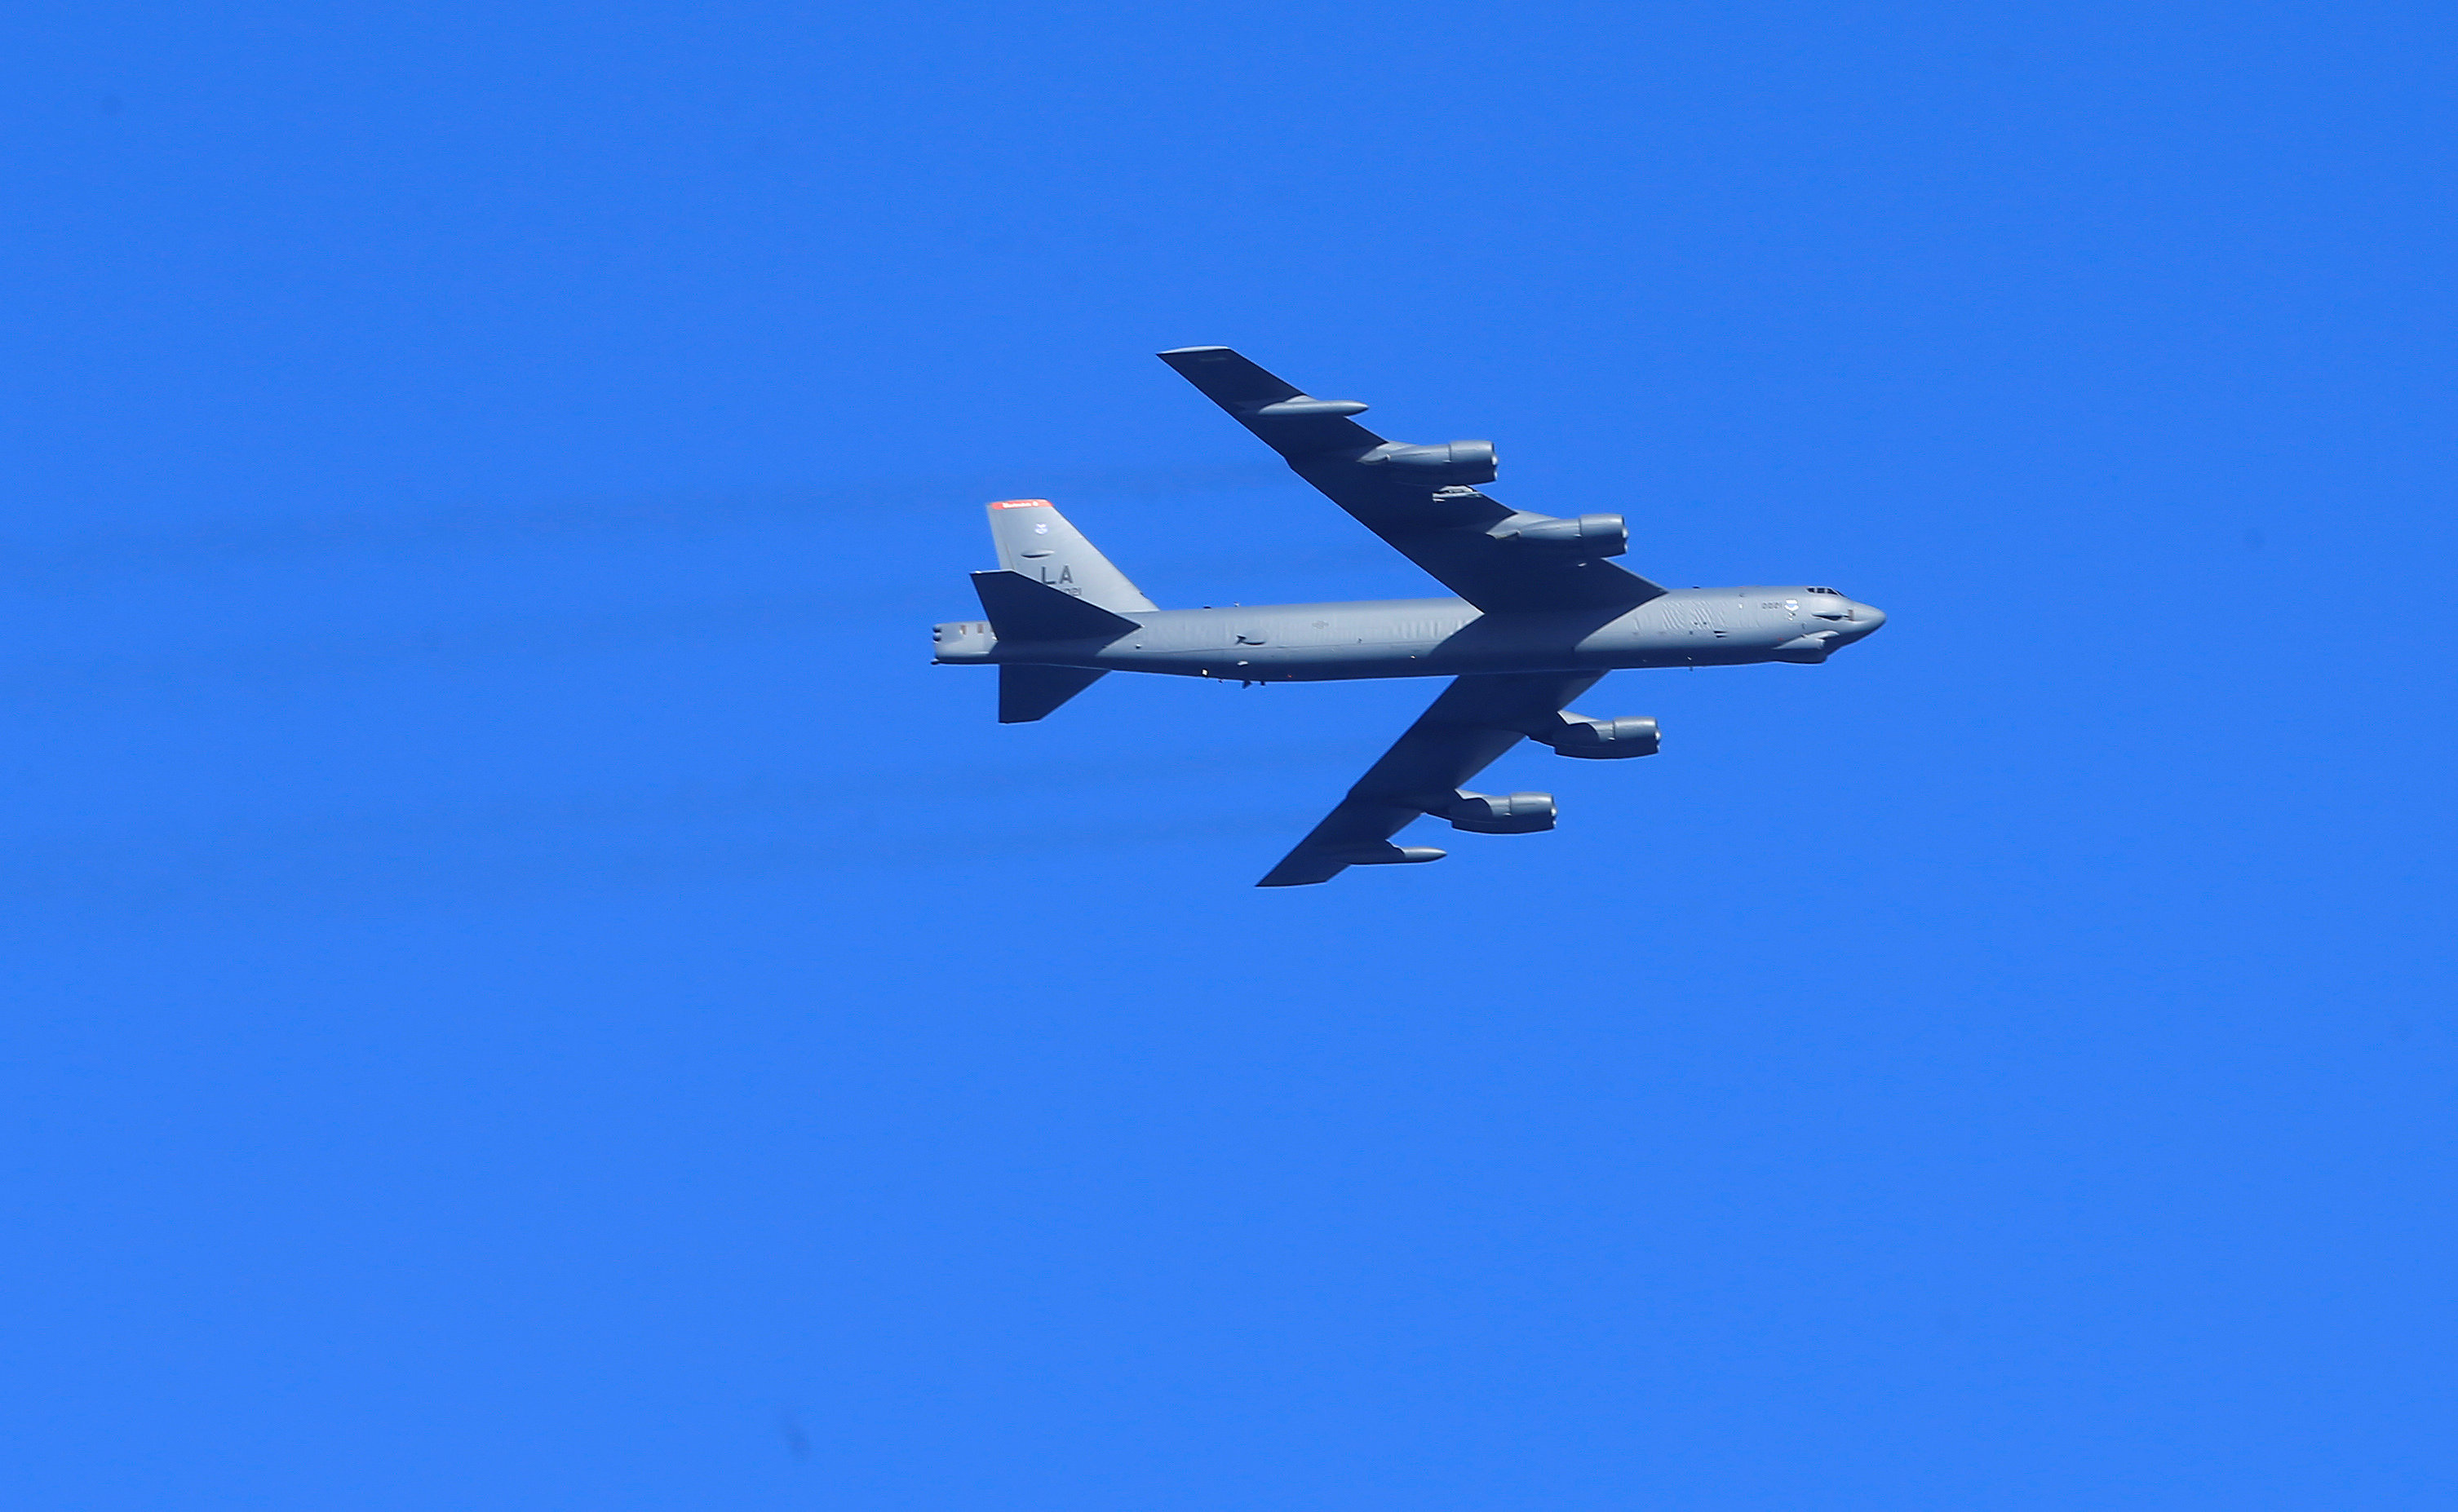 U.S. Air Force B-52 bomber flies during the annual recurring multinational, maritime-focused NATO exercise BALTOPS 2017 near Ventspils, Latvia June 6, 2017. REUTERS/Ints Kalnins